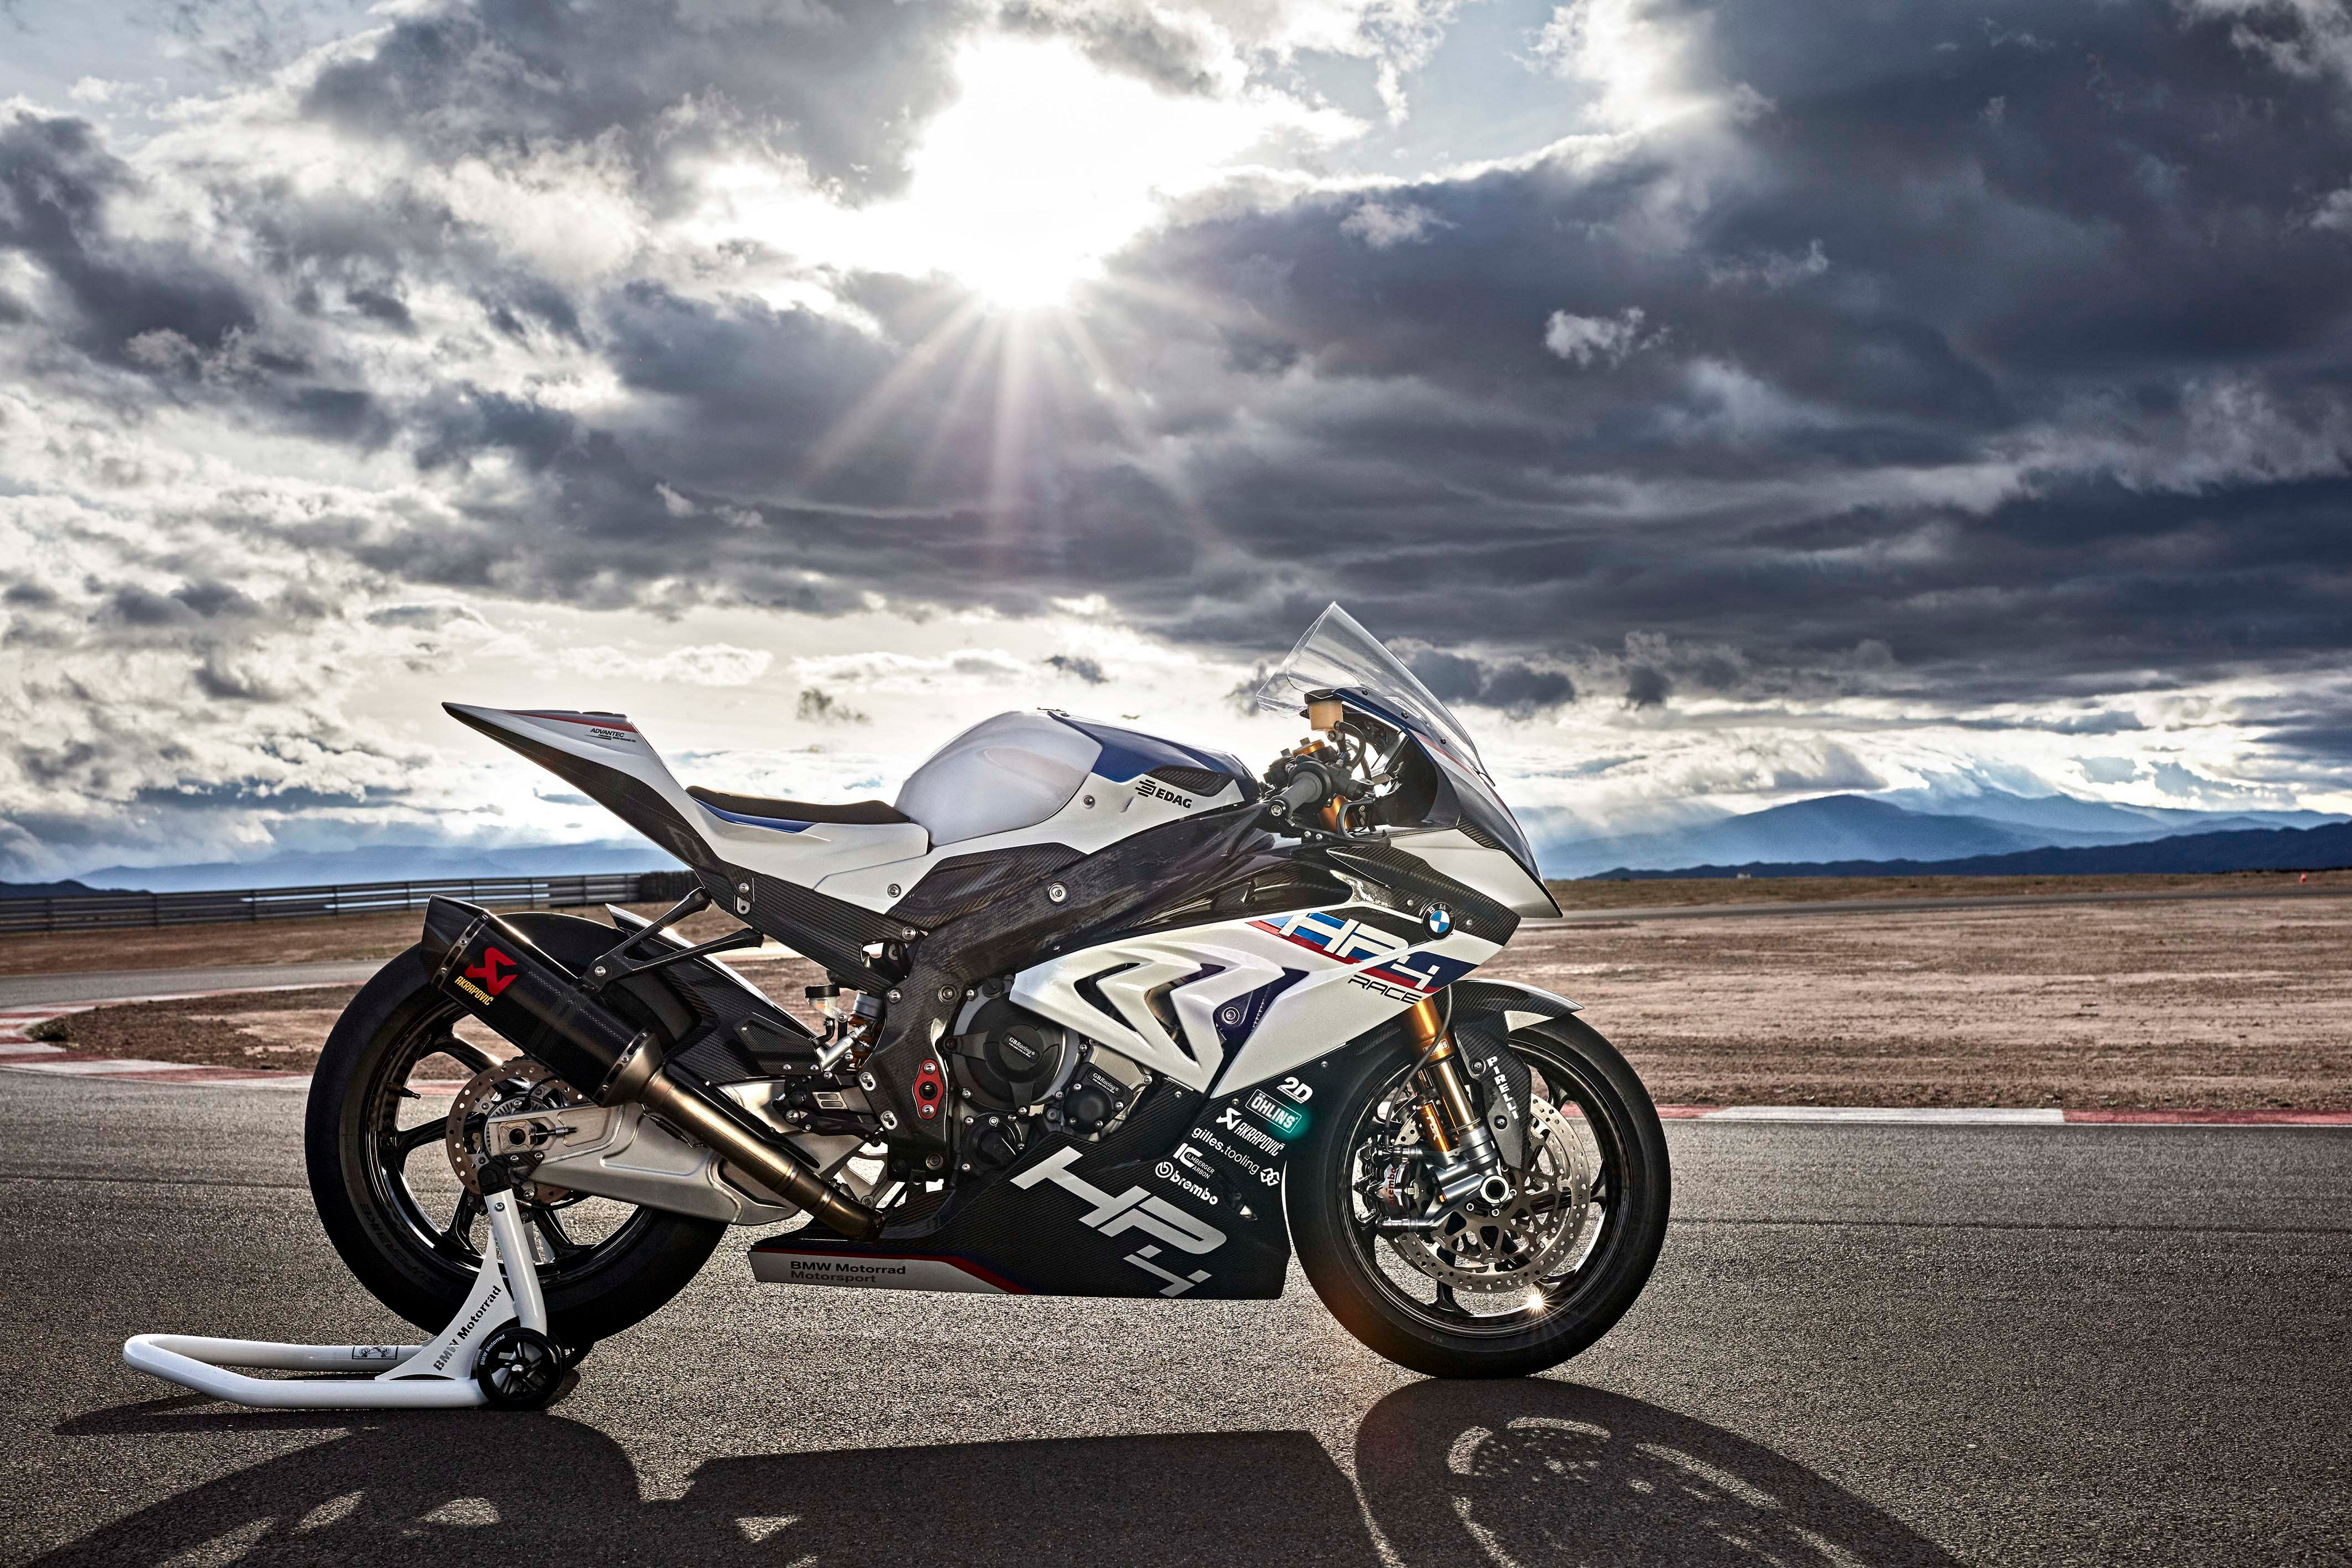 Bmw S1000rr For Sale >> Bmw H4 Race 4k, HD Bikes, 4k Wallpapers, Images, Backgrounds, Photos and Pictures